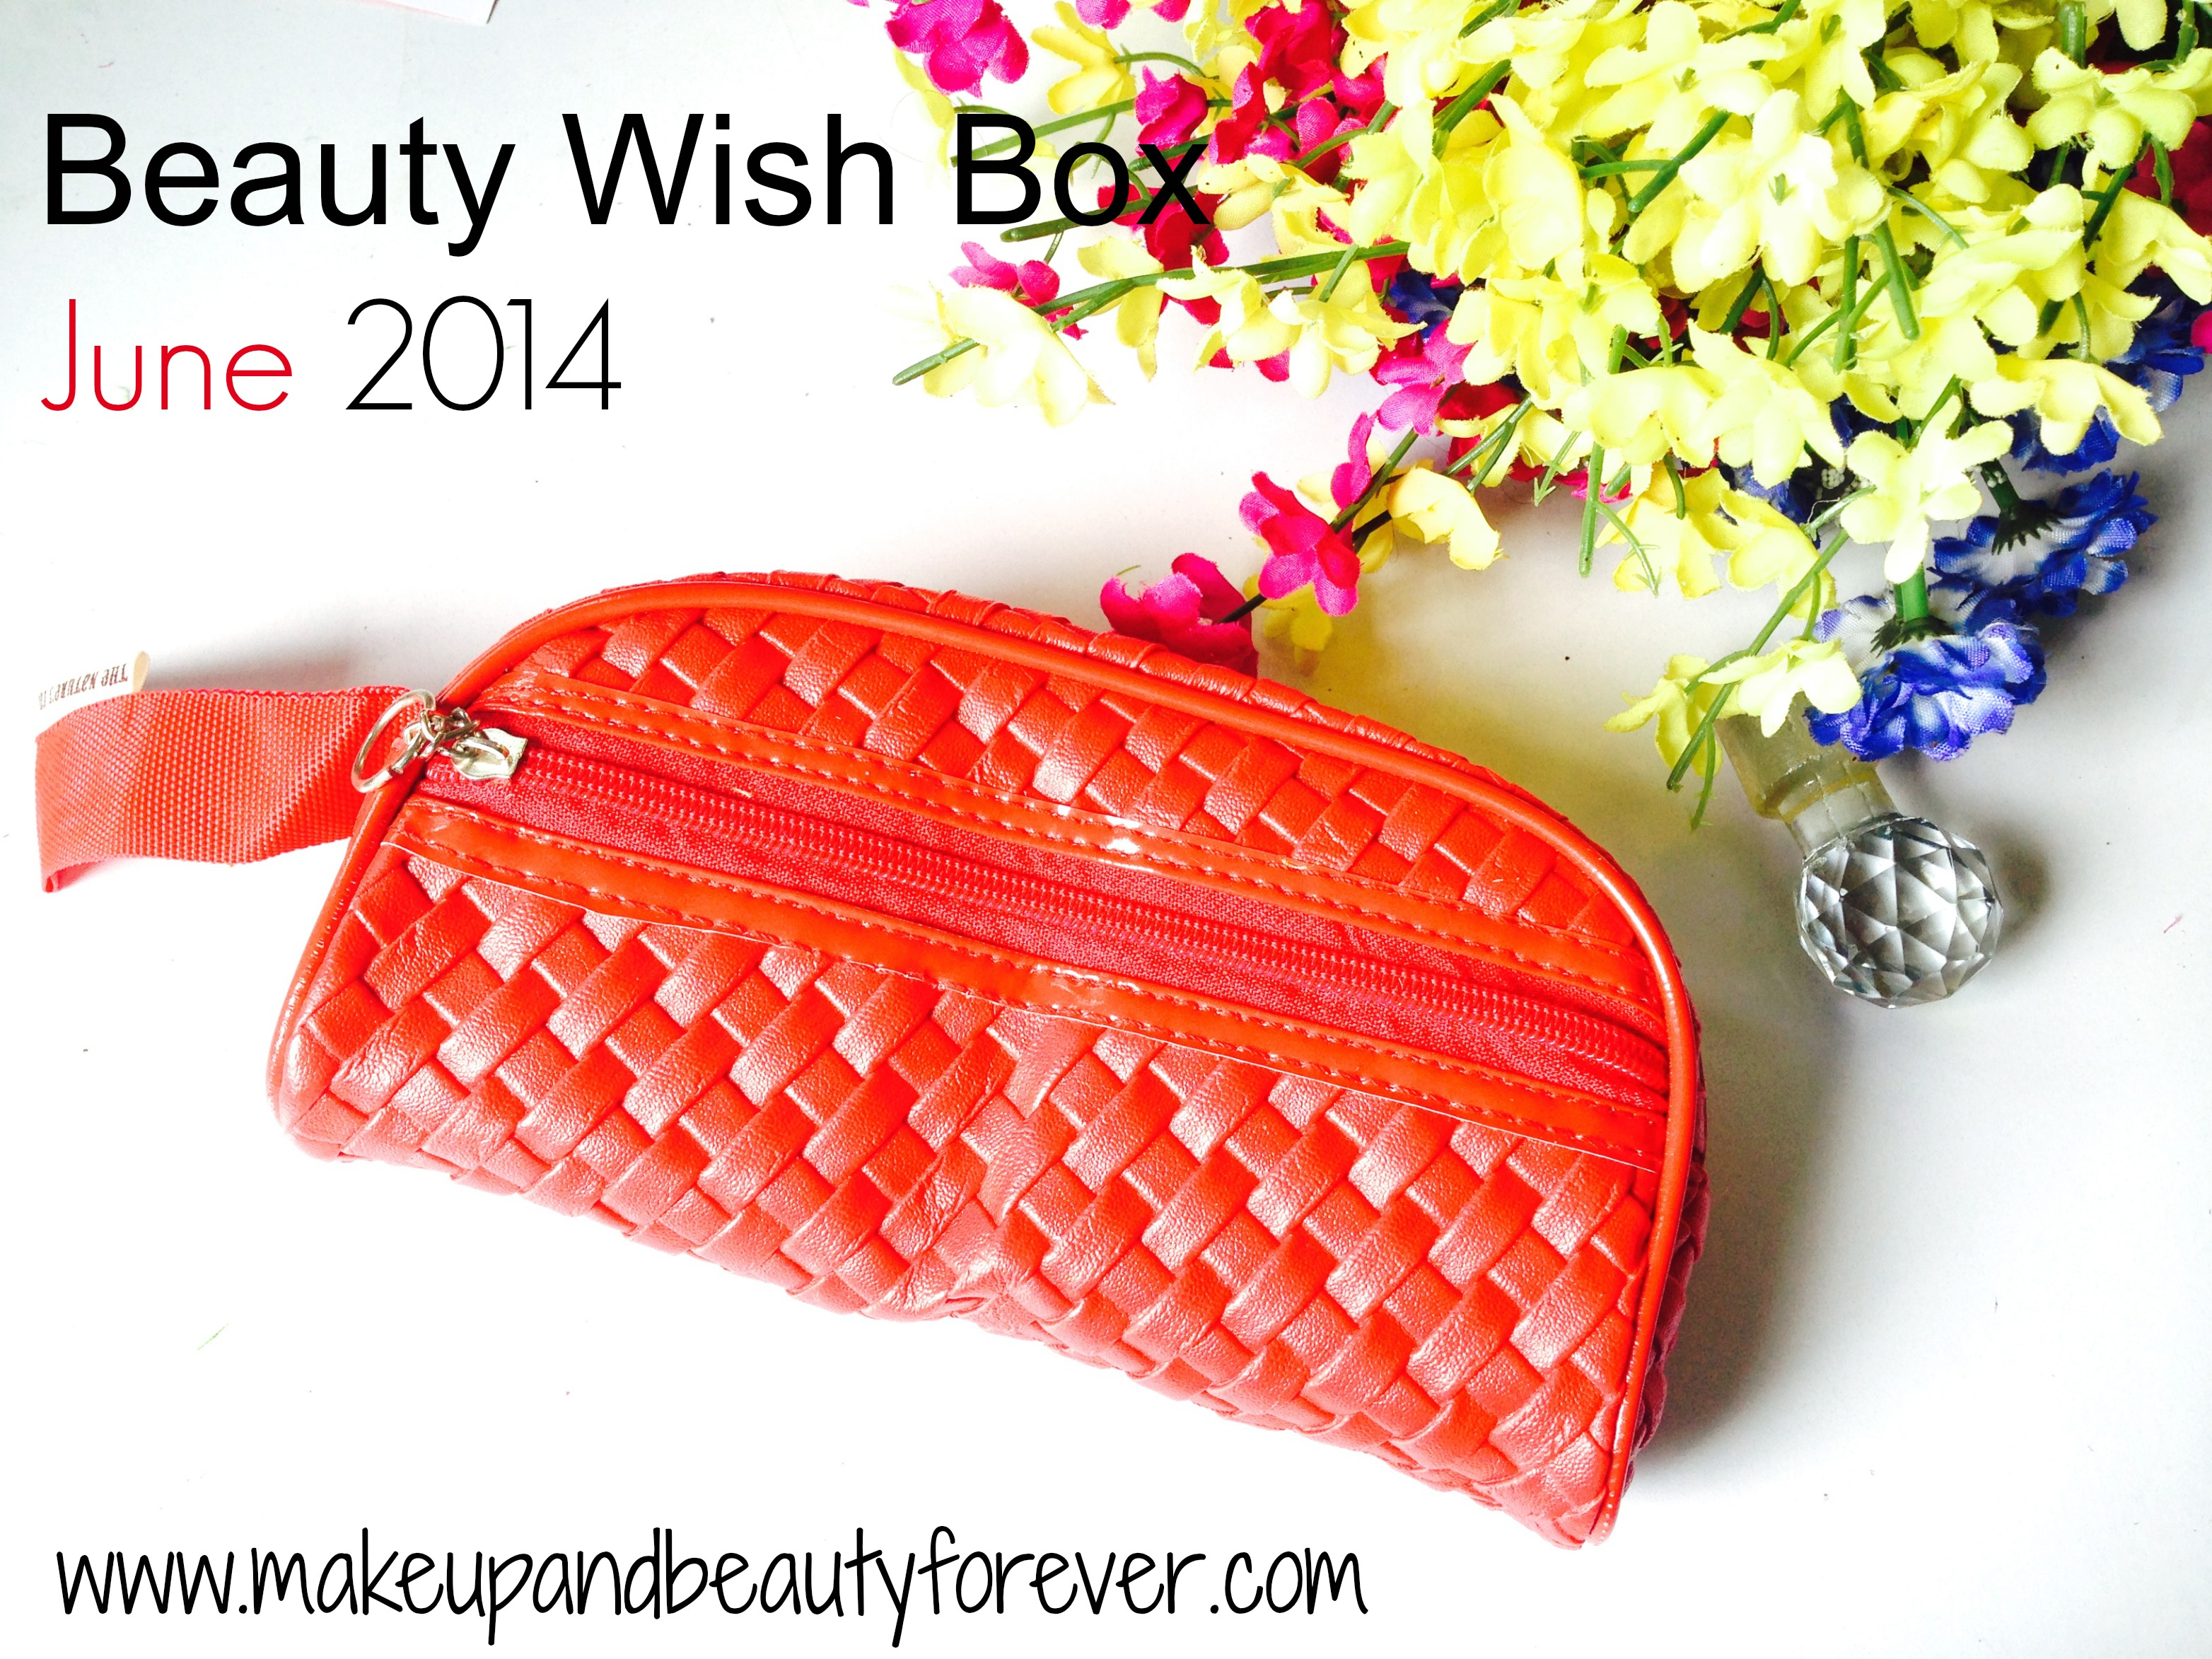 Beauty Wish Box by The Nature's Co. – May 2014